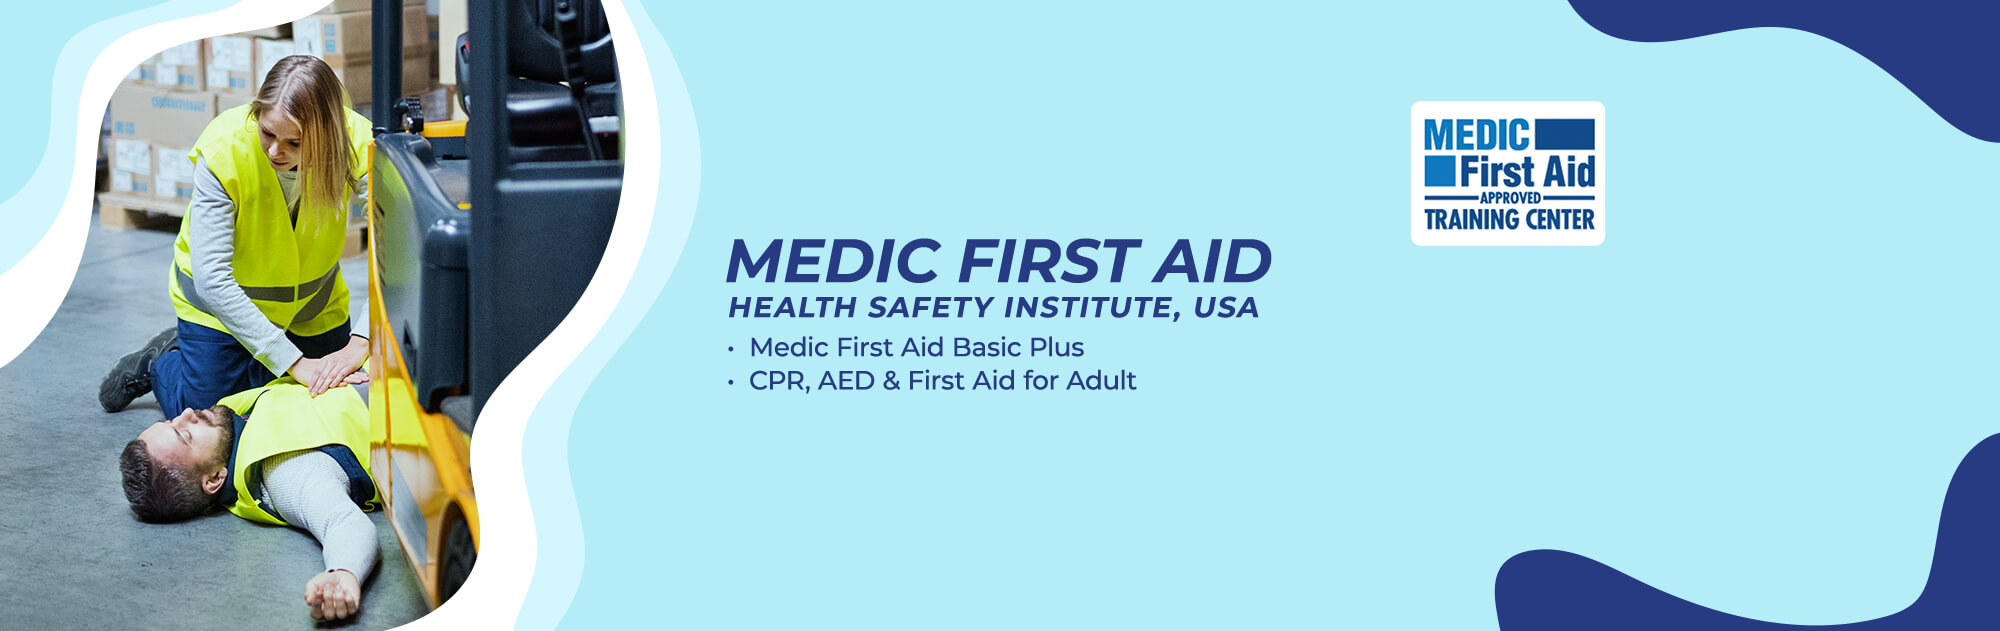 MFA Health Safely Institute USA, Medic First Aid Basic Plus, CPR, AED and First Aid for Adult